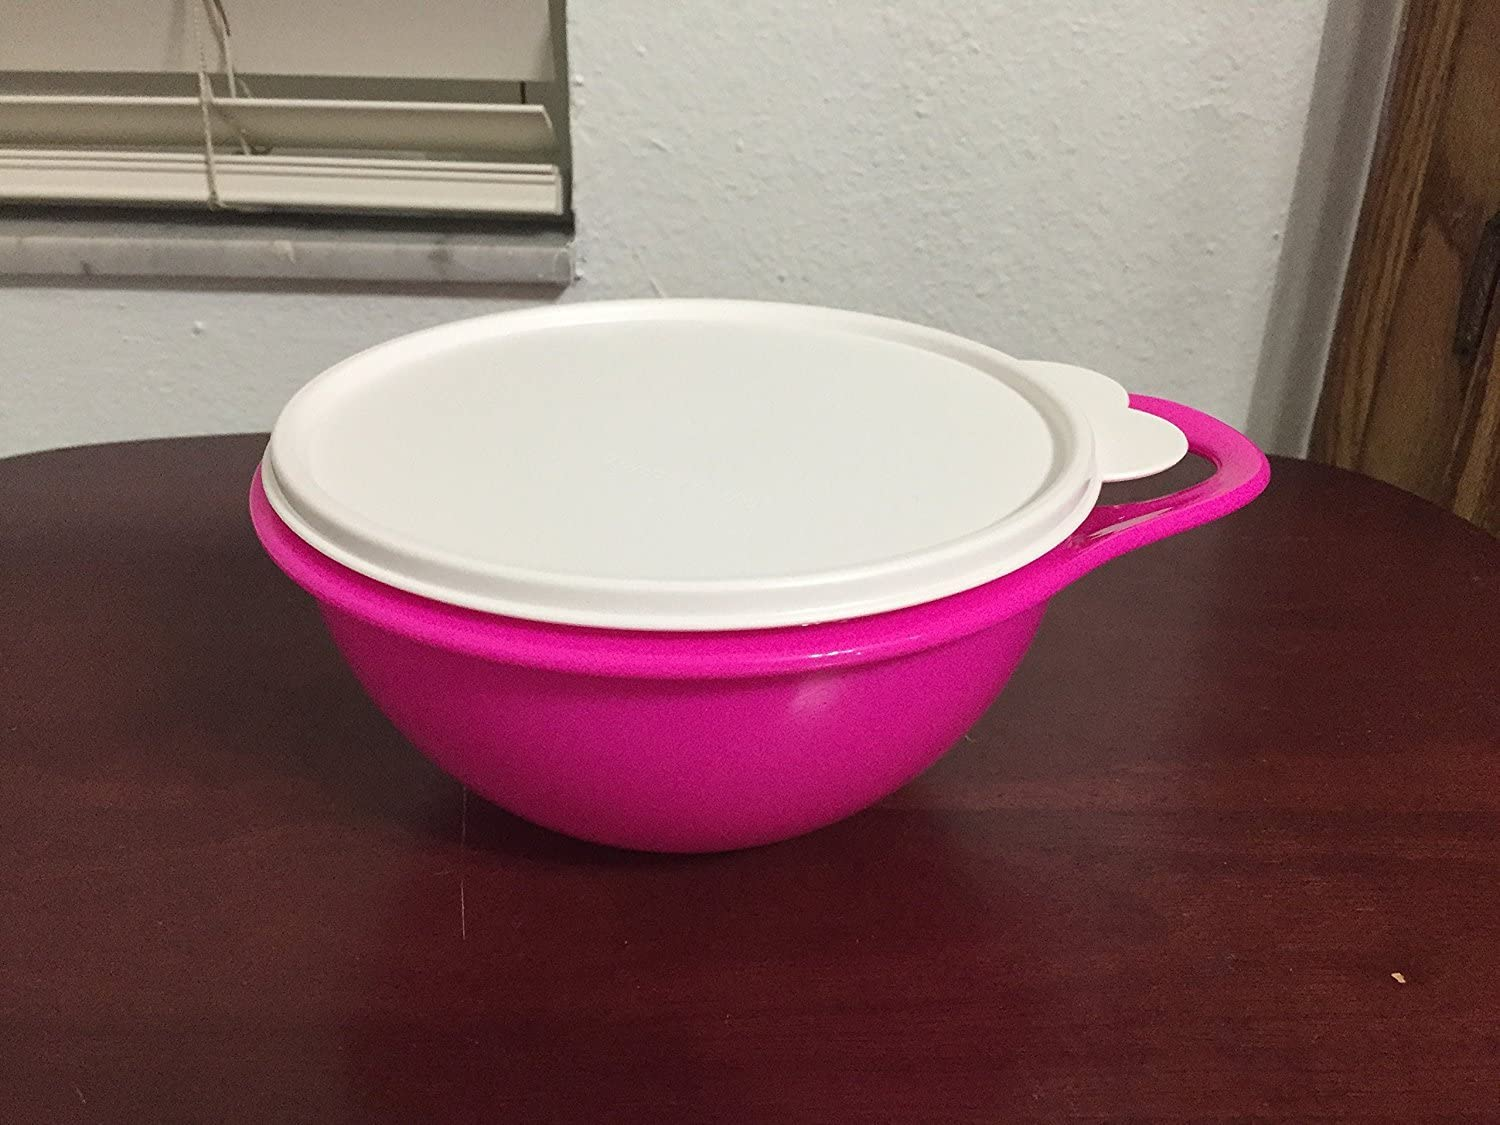 Tupperware 6 Cup Thatsa Mini Bowl in Electric Hot Pink with Snow White Seal